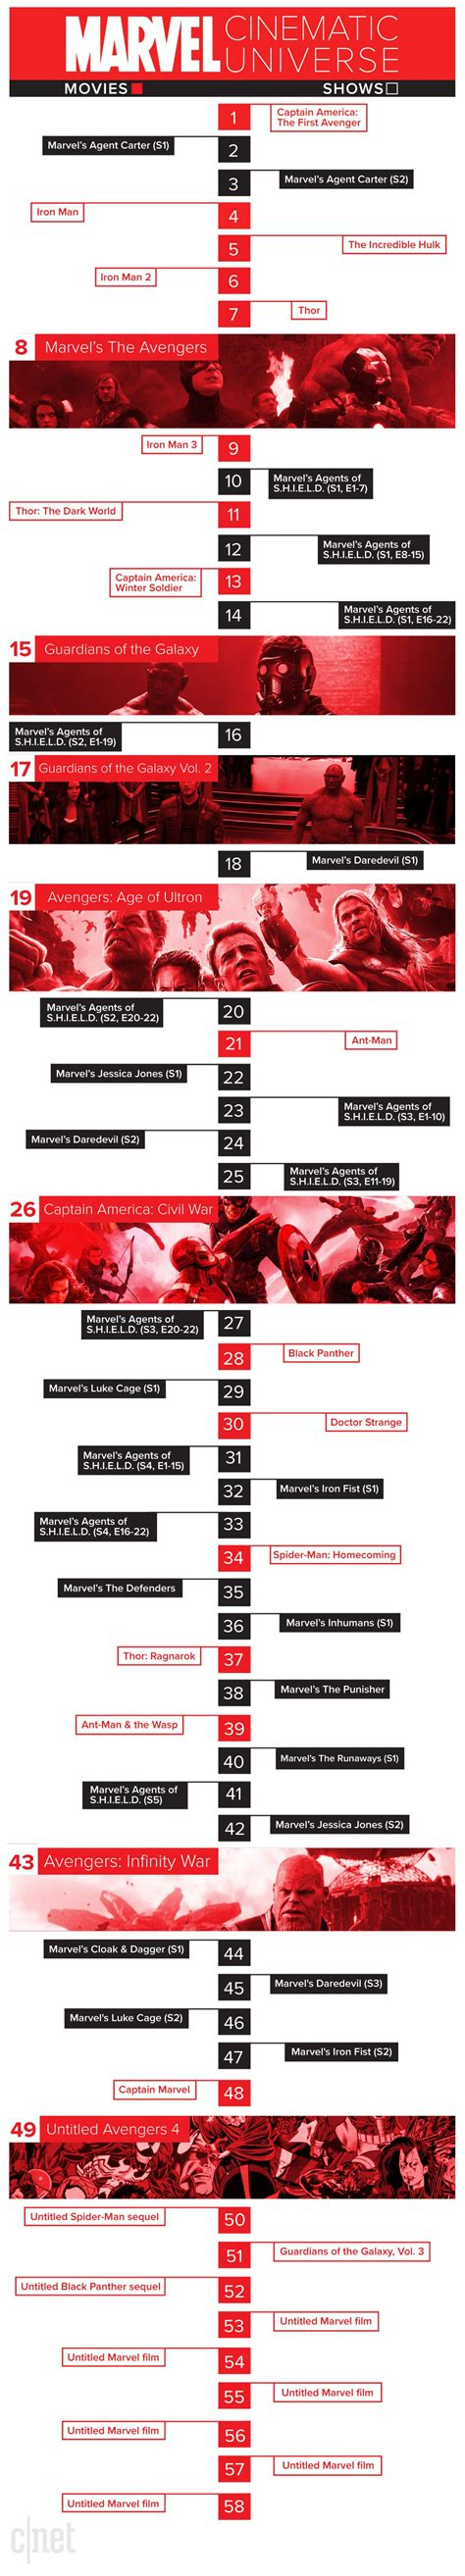 the ultimate marvel movie universe timeline how to watch every marvel movie and tv show in the perfect